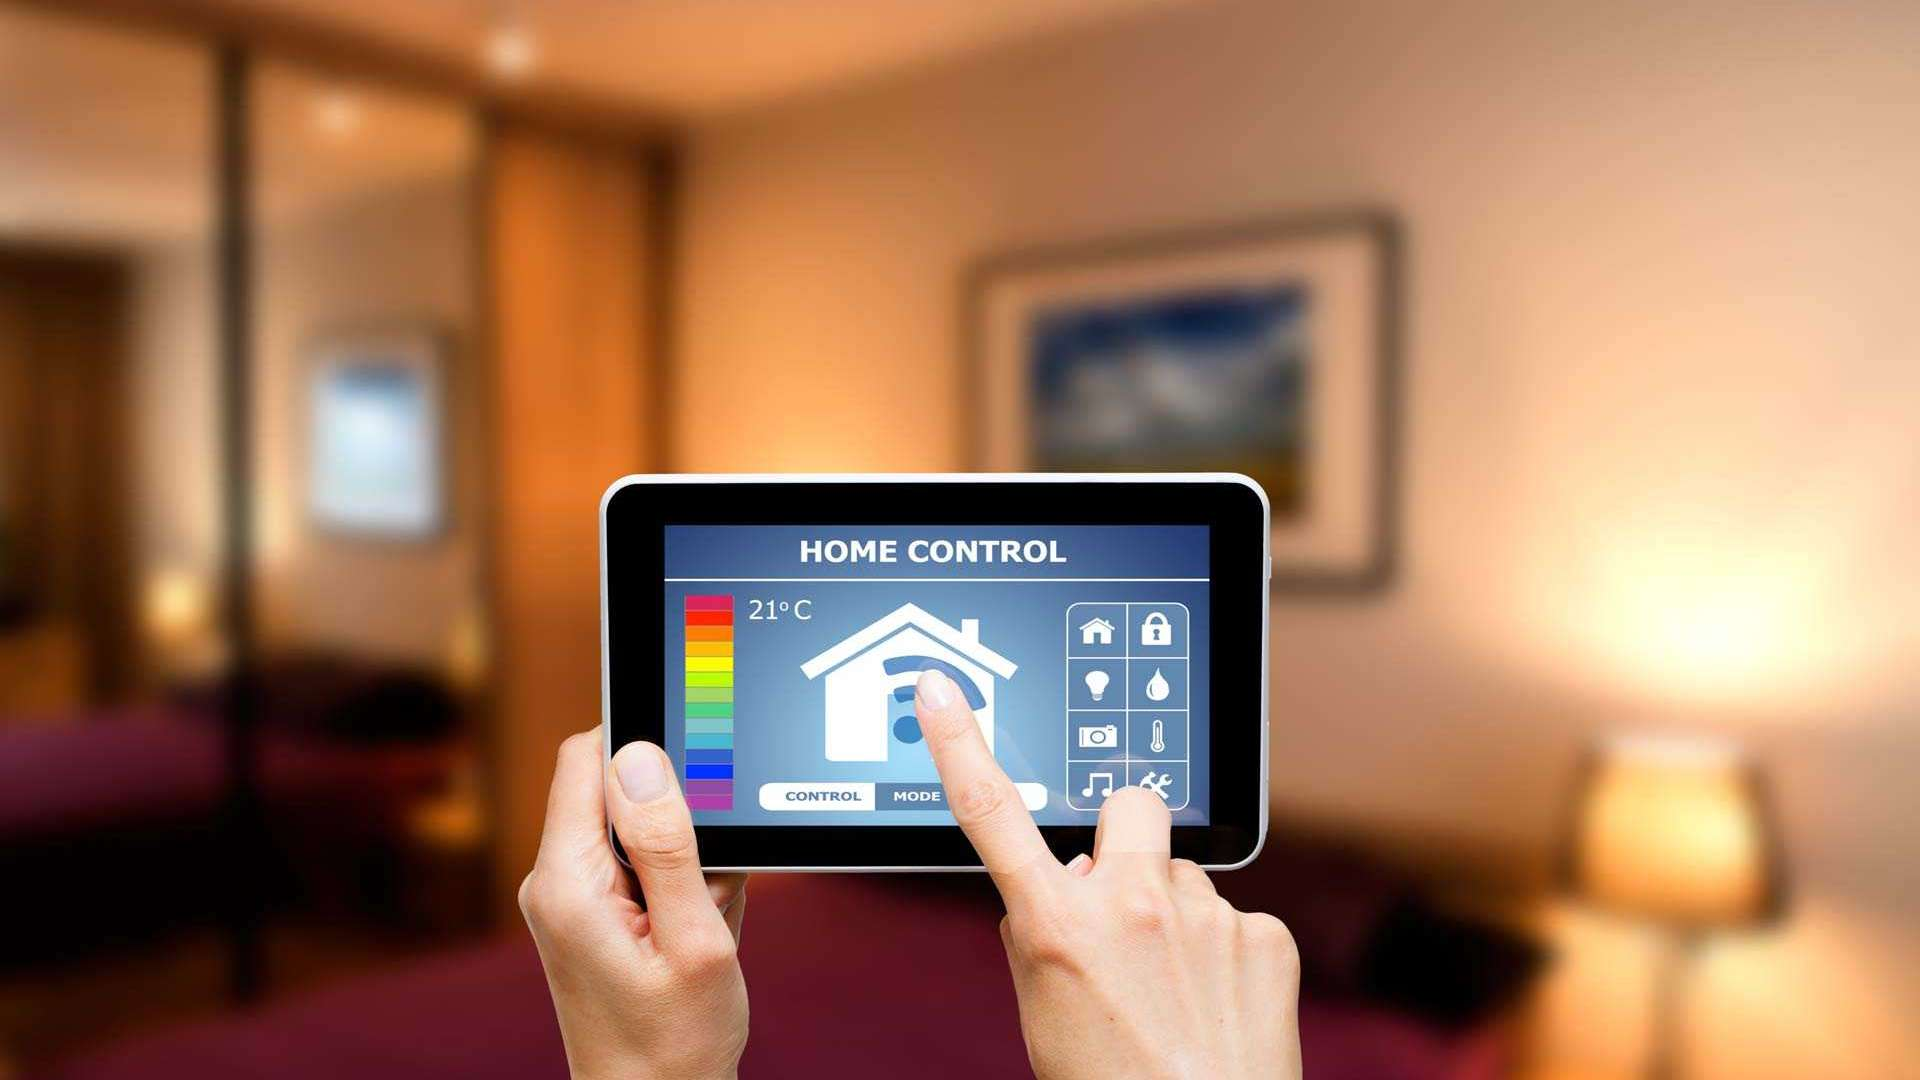 Internet of Things might as well be called Internet of Sensors, they are so pivotal to the new wave of electronics